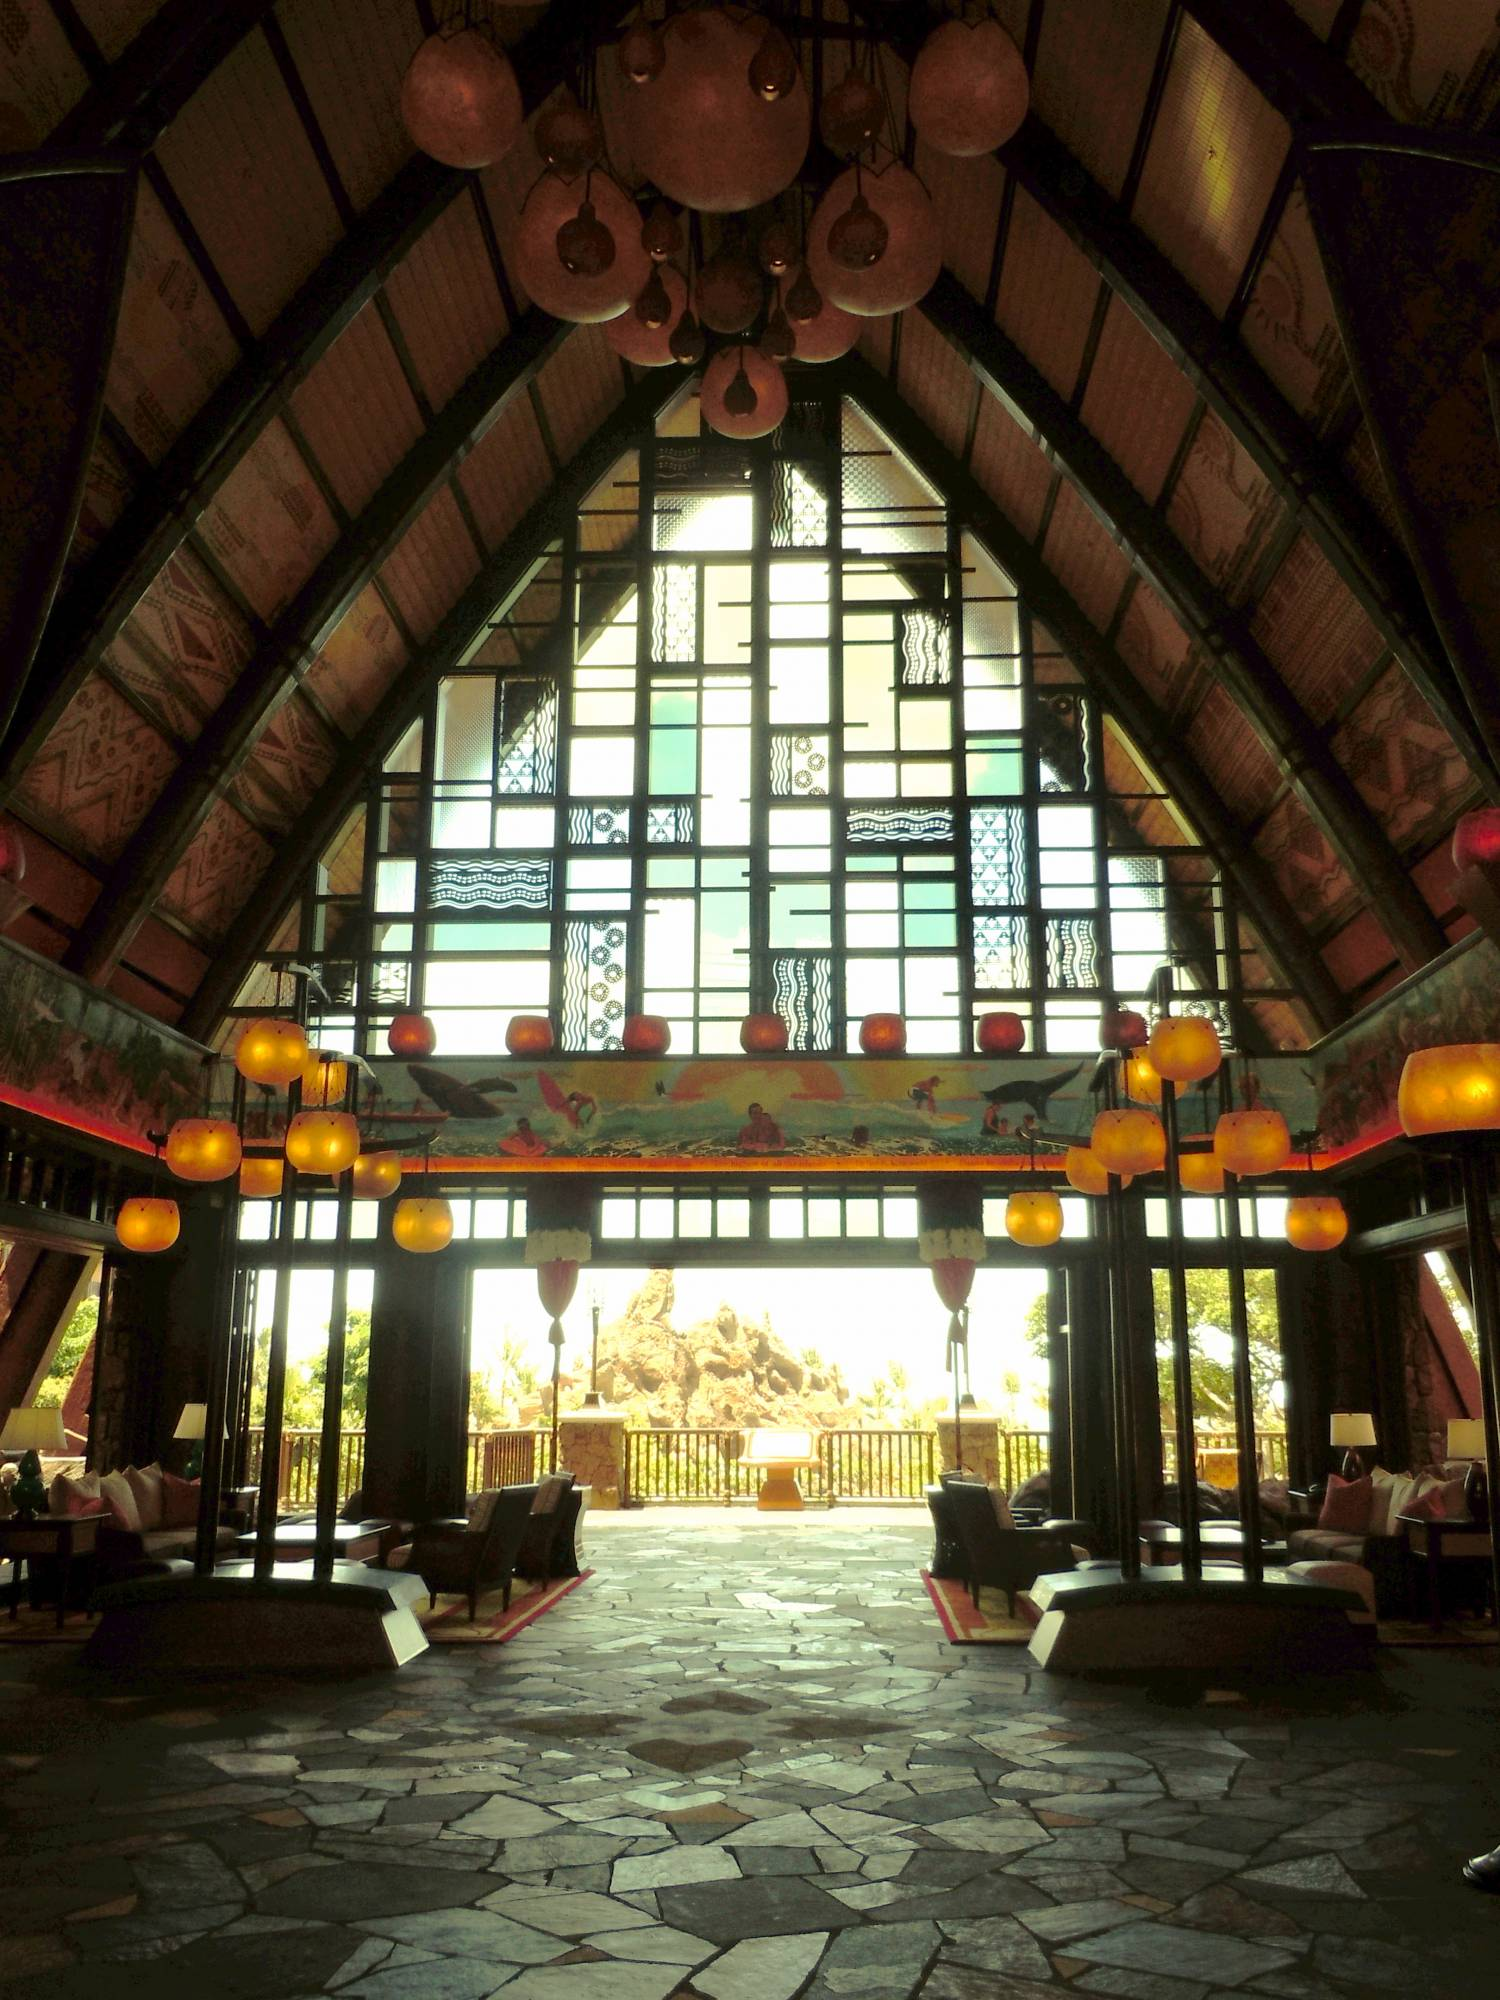 Discover the magic of Disney's newest resort, Aulani | PassPorter.com